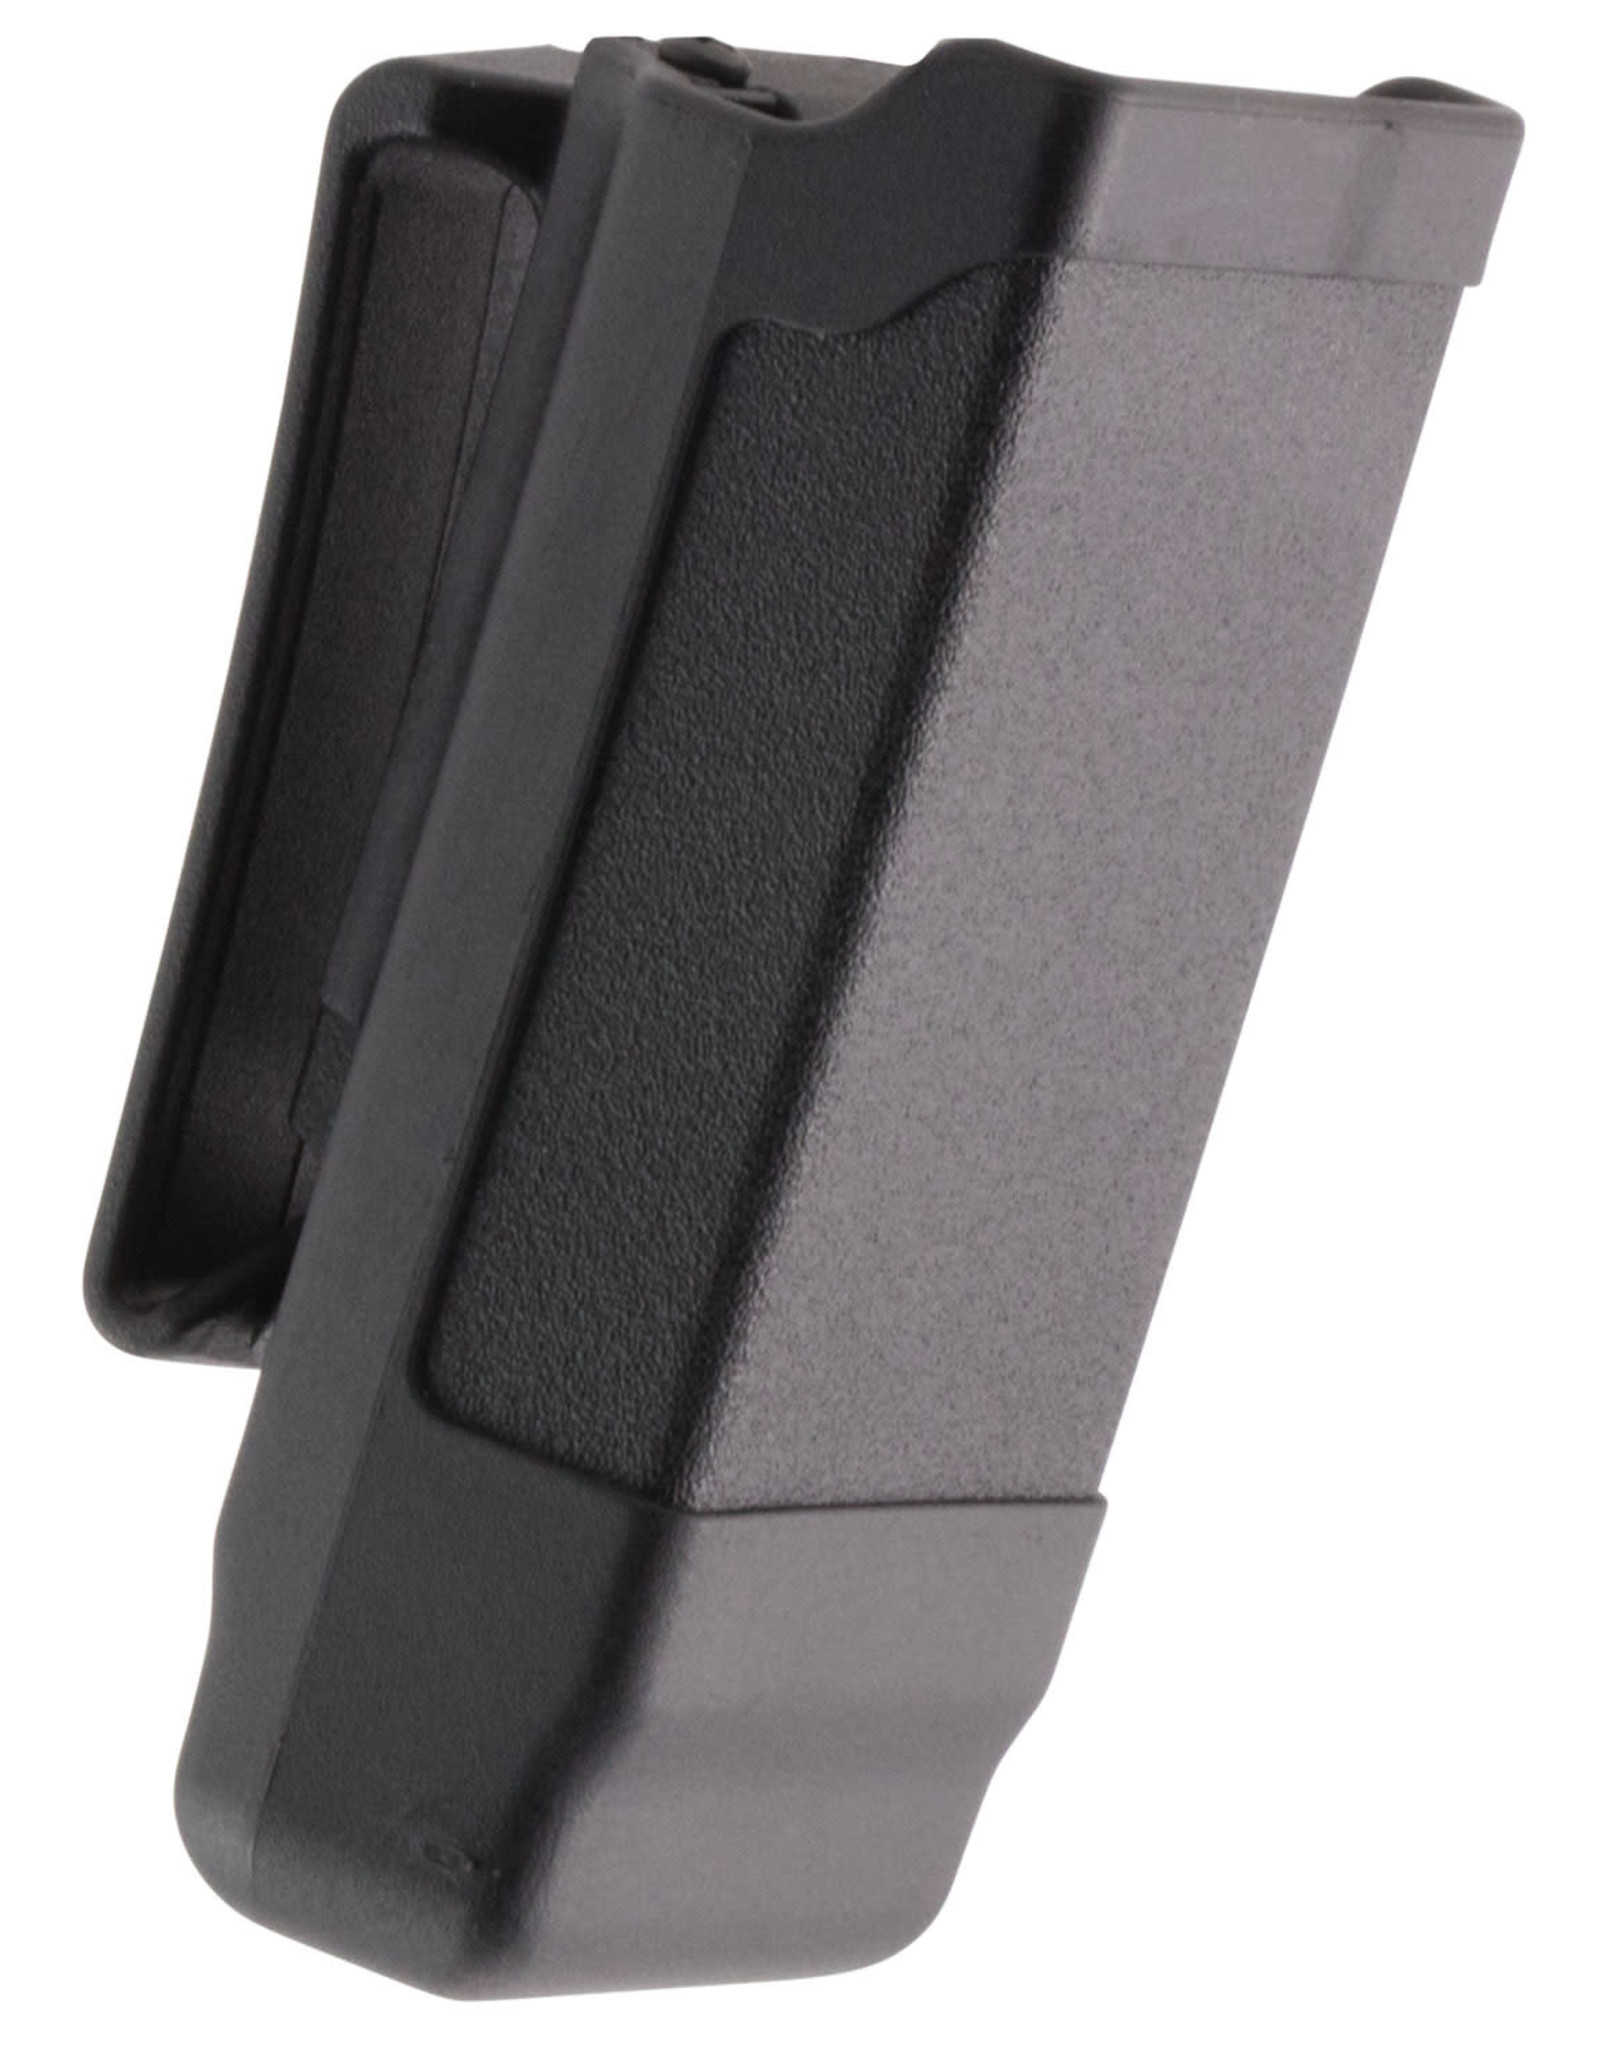 BLACK HAWK PRODUCTS Blackhawk Single Magazine Case 9mm/40 & Single Row 10mm/45